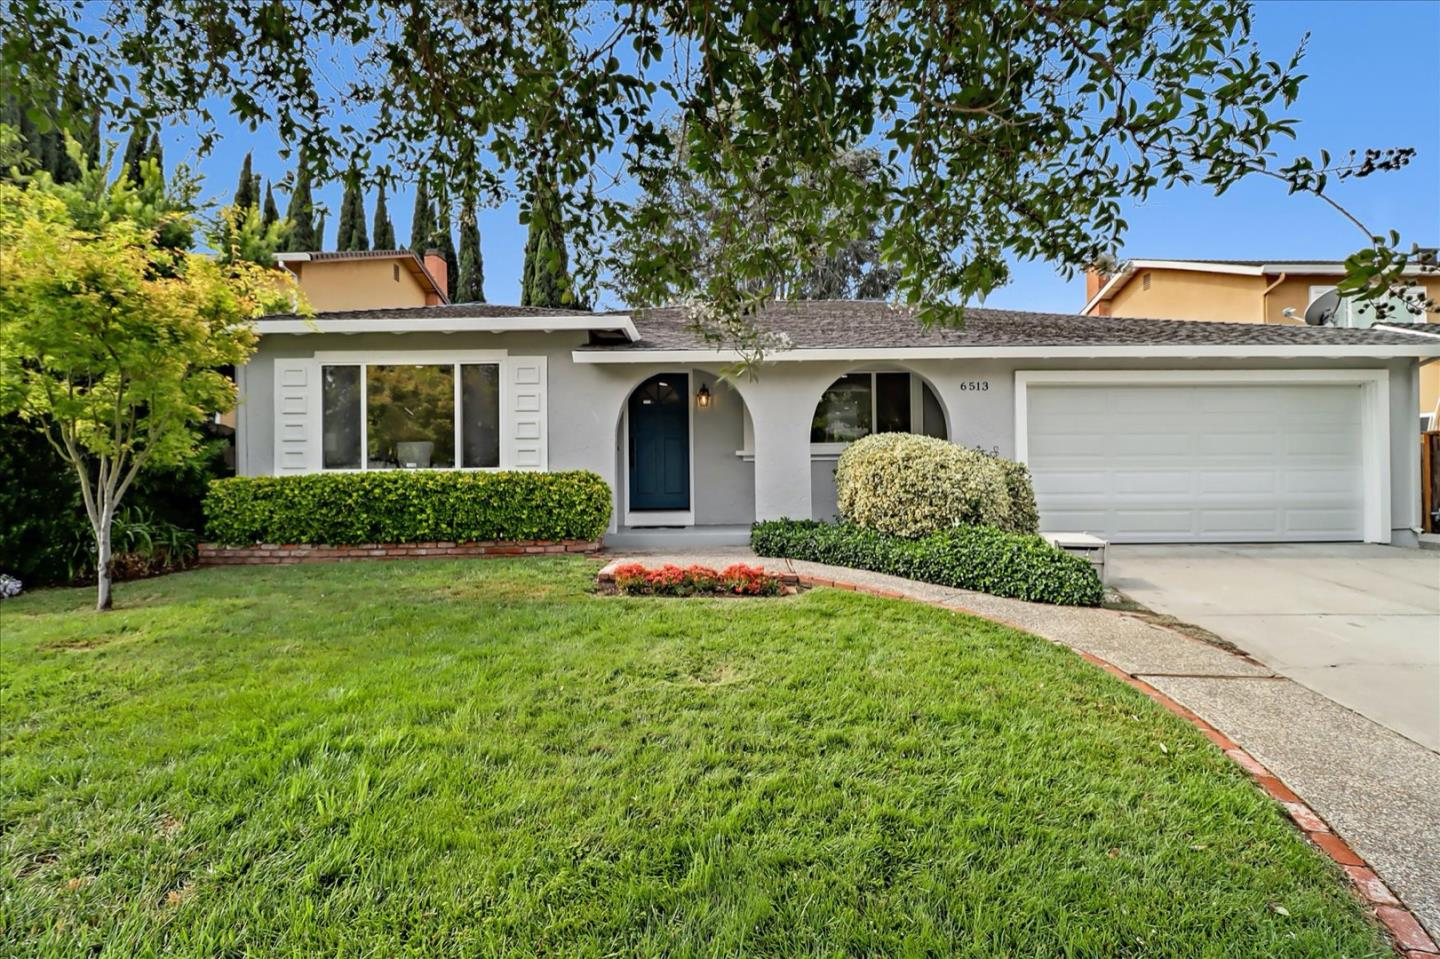 Remodeled and move-in ready! This highly desirable single-level home with 4 bedrooms & 2 bathrooms will meet the needs of everyone. The true heart of this house lives in the fully updated kitchen! All new white cabinets, quartz countertops, stainless steel appliances, farmer's sink, modern island for cooking & entertainment, plus an open concept floor plan that combines the kitchen with the family room. Large windows facing the garden and impressive skylights bring lots of natural light inside. Formal dining room and spacious living room. Updates include new flooring, baseboards & crown molding, recessed lighting, custom-designed bathrooms, new closet doors, new garage door, and fresh interior & exterior paint! Beautiful patio and landscaped backyard for your enjoyment. Close to the foothills, hiking trails, shopping & dining, hospital, library, light rail, and highly rated schools! Plus, membership at Rancho Santa Teresa Swim & Racquet Club will bring lots of joy to your family.